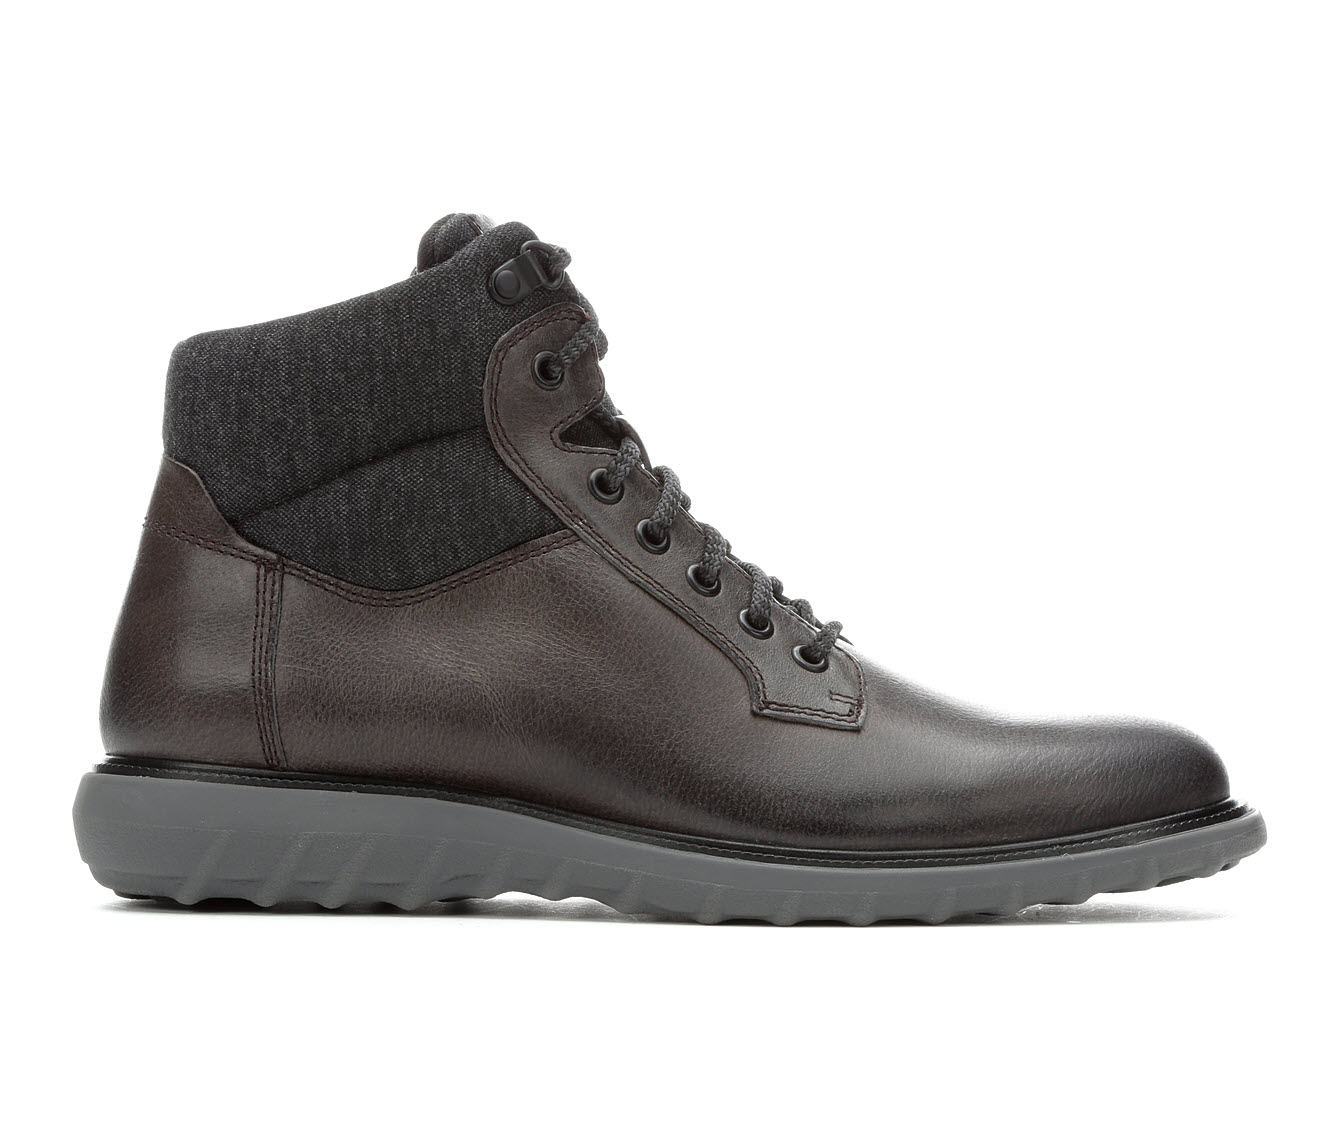 Dockers Lewis Chukka Men's Boots (Gray Leather)